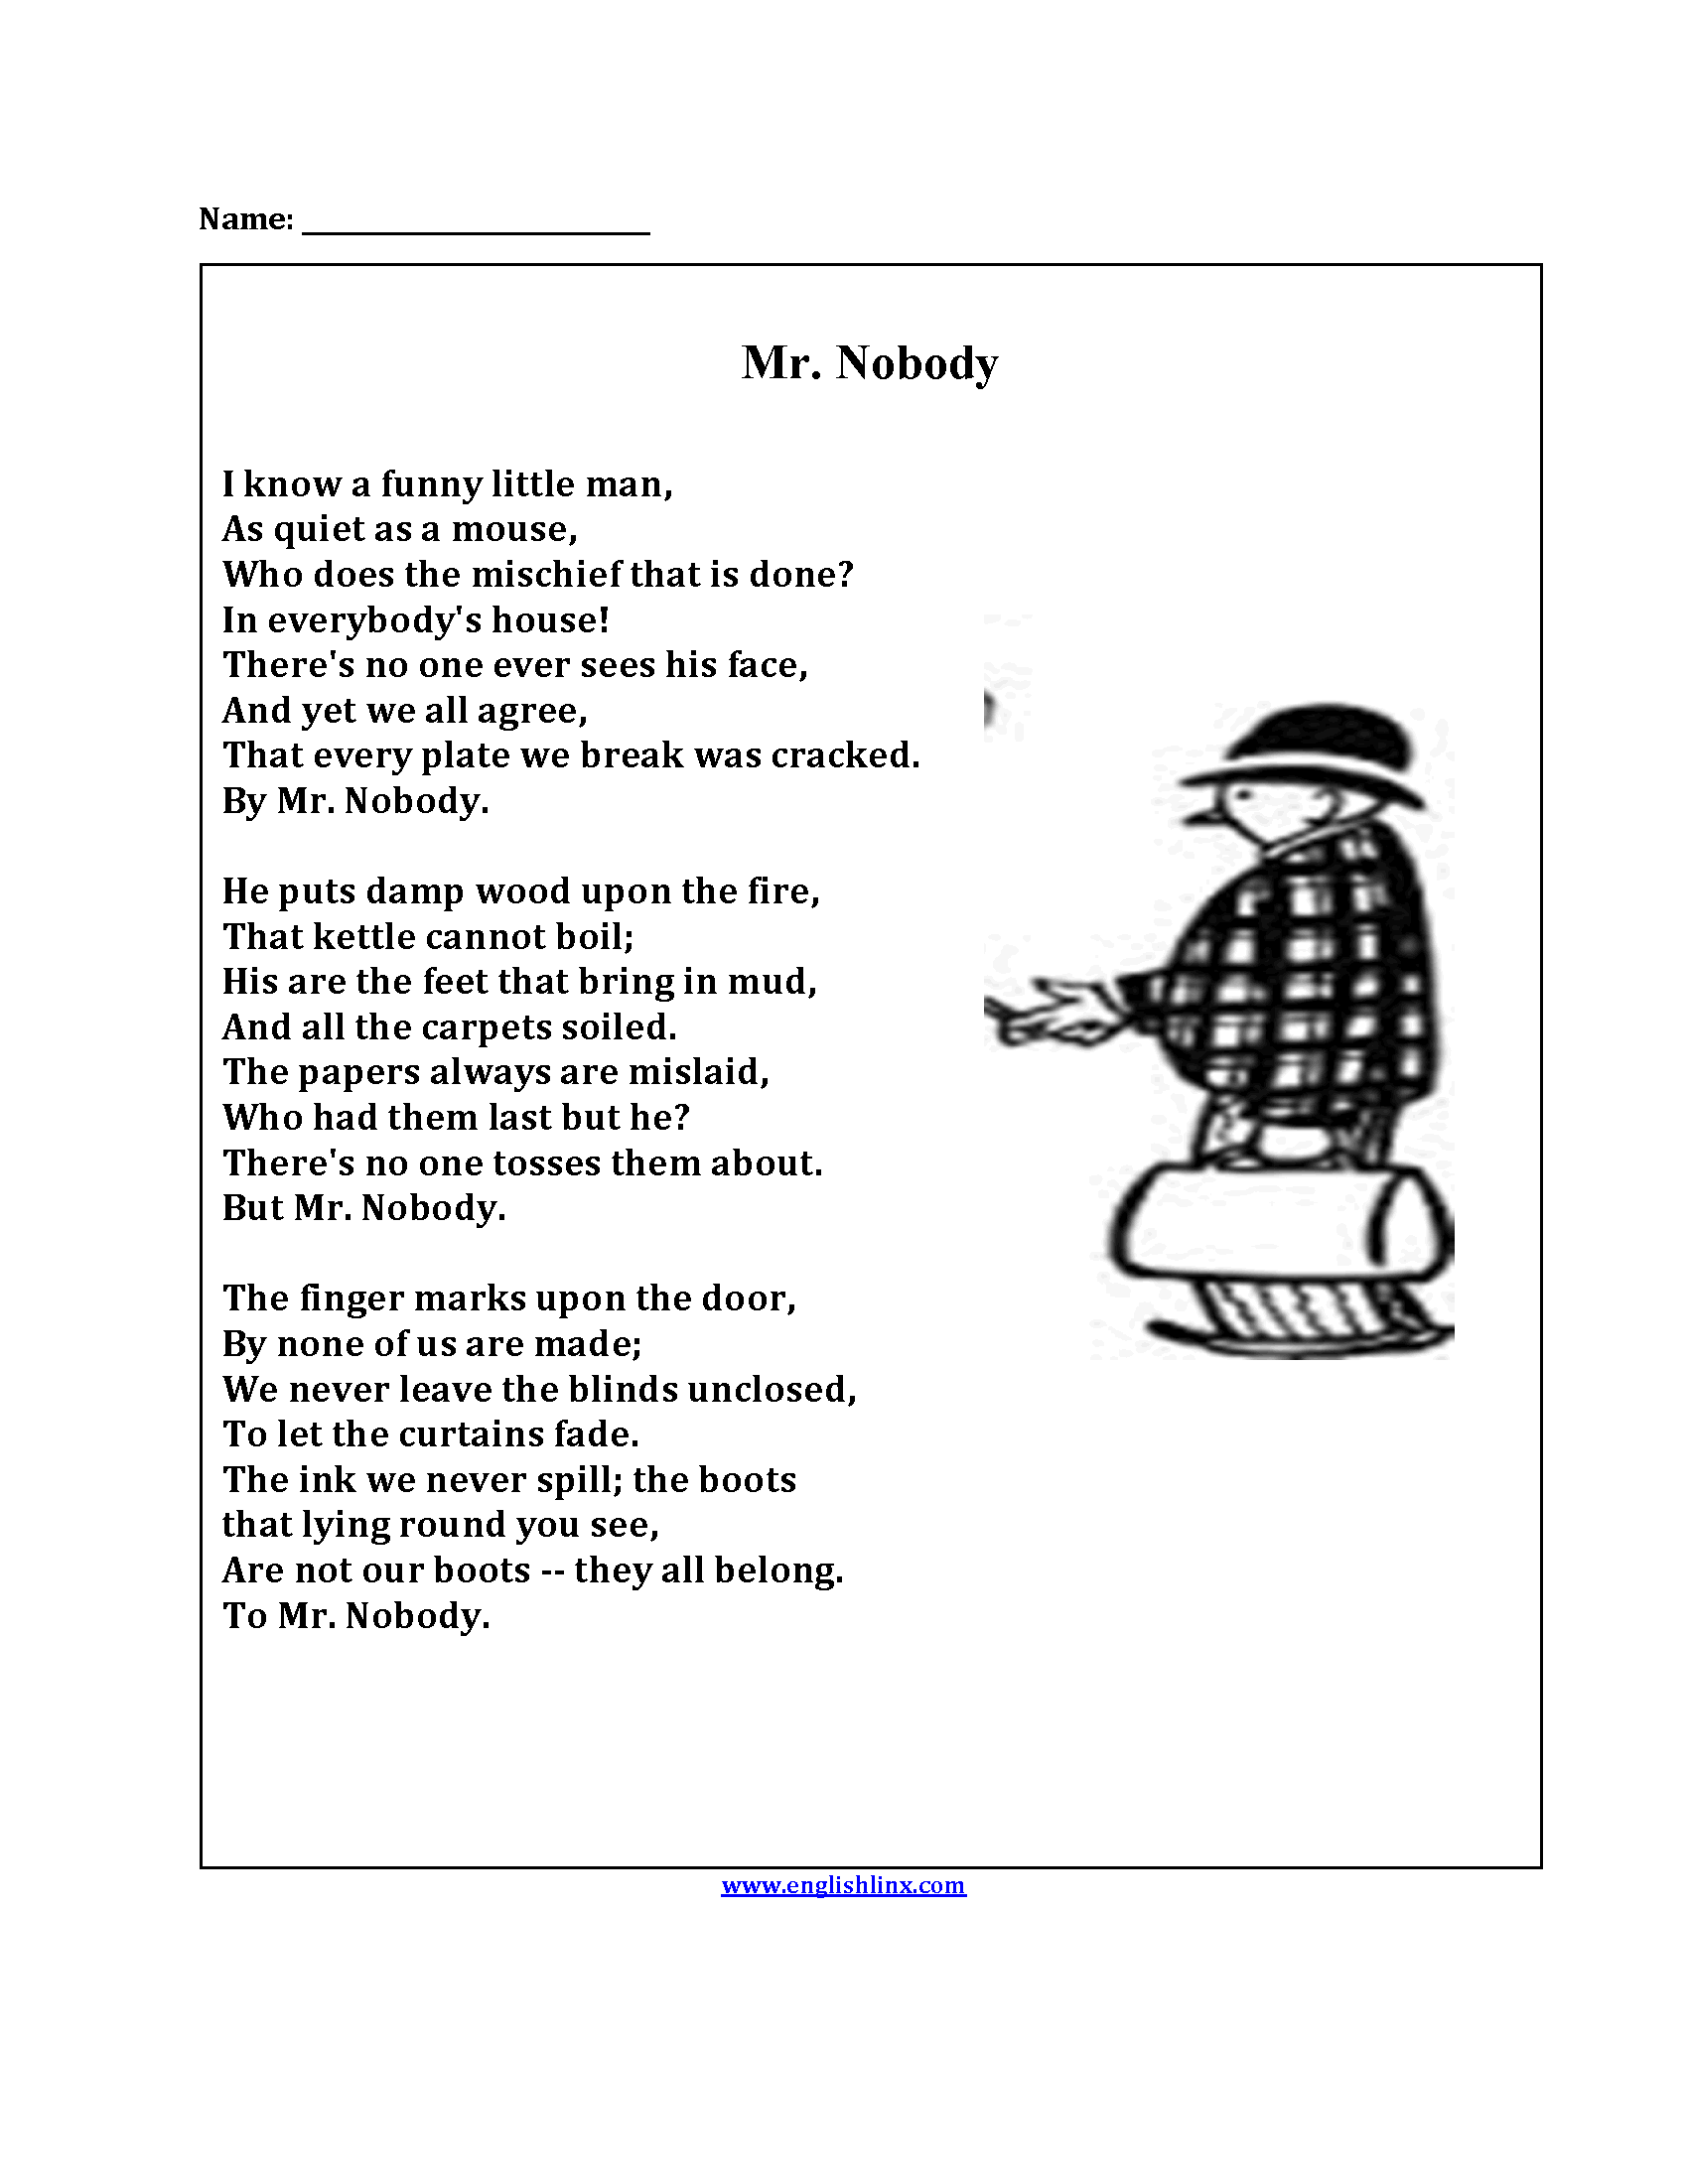 Poetry Worksheets | Mr. Nobody Poetry Worksheets